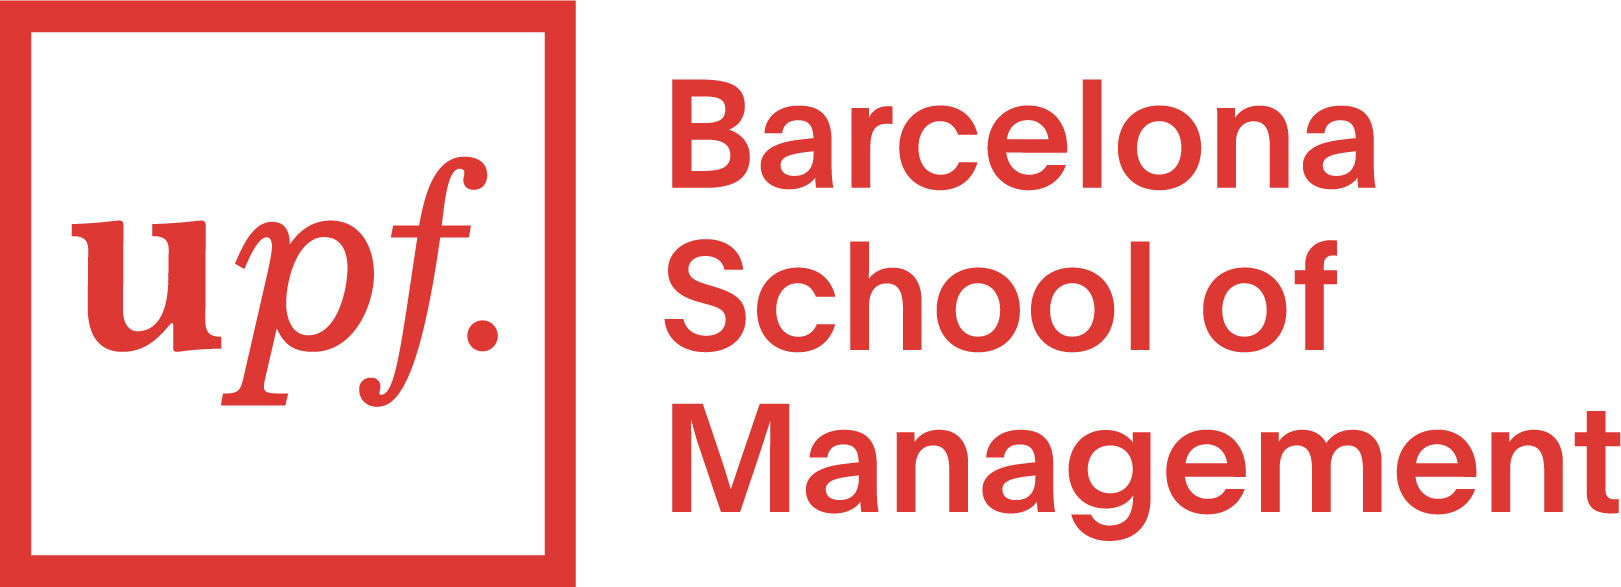 Barcelona-School-of-Management